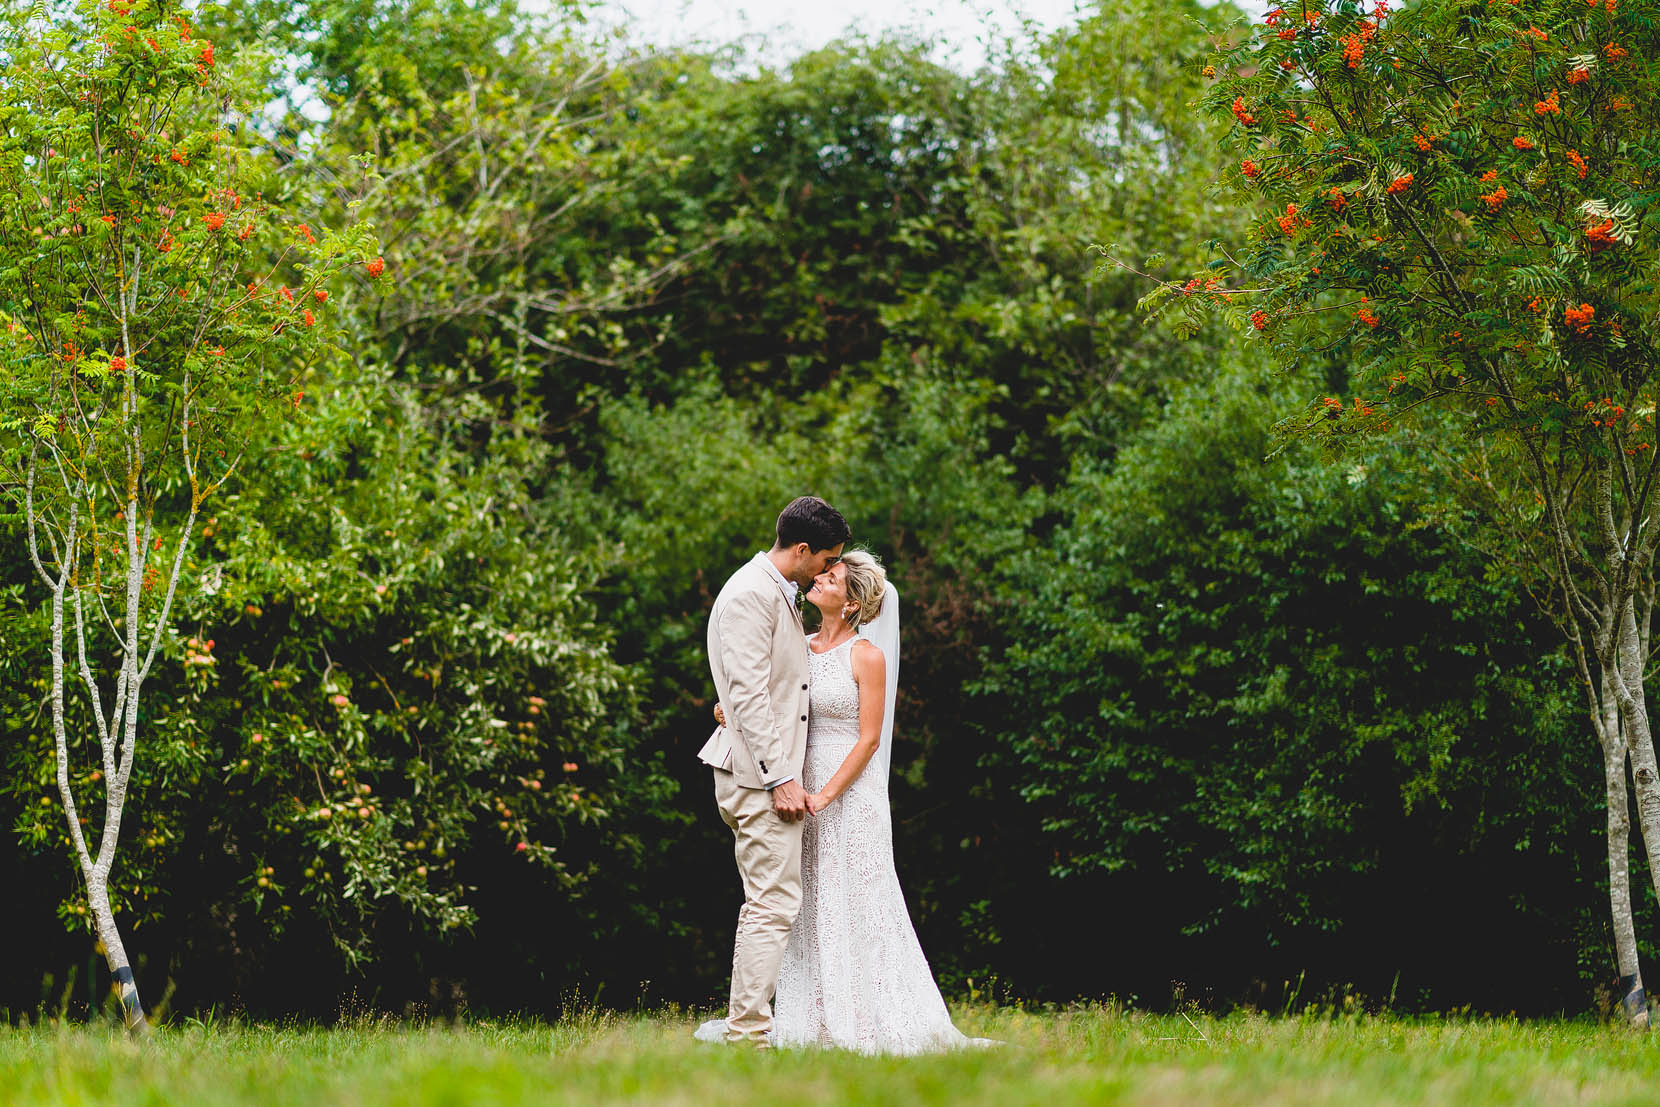 Tom and Jenny having a snuggle in mu and dads back garden in Swainsthorpe, Norfolk on their wedding day